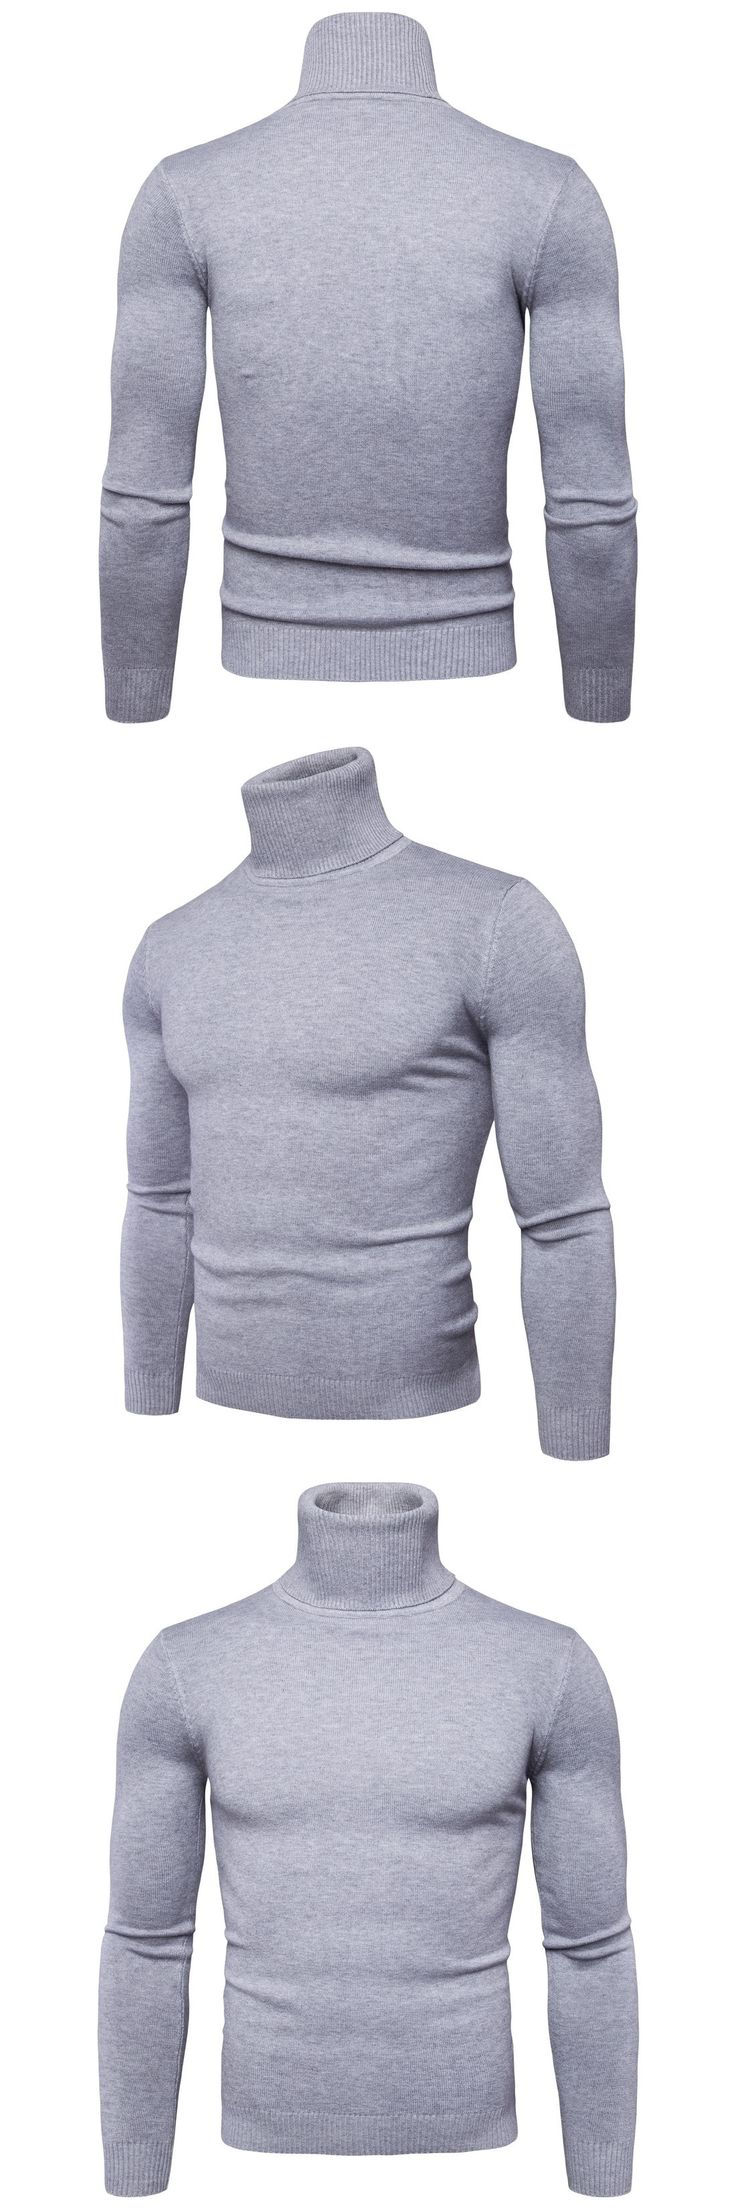 2017 New Autumn Winter Brand Sweater Men's Turtleneck Slim Pullover Solid Color Knitted Sweater Y959